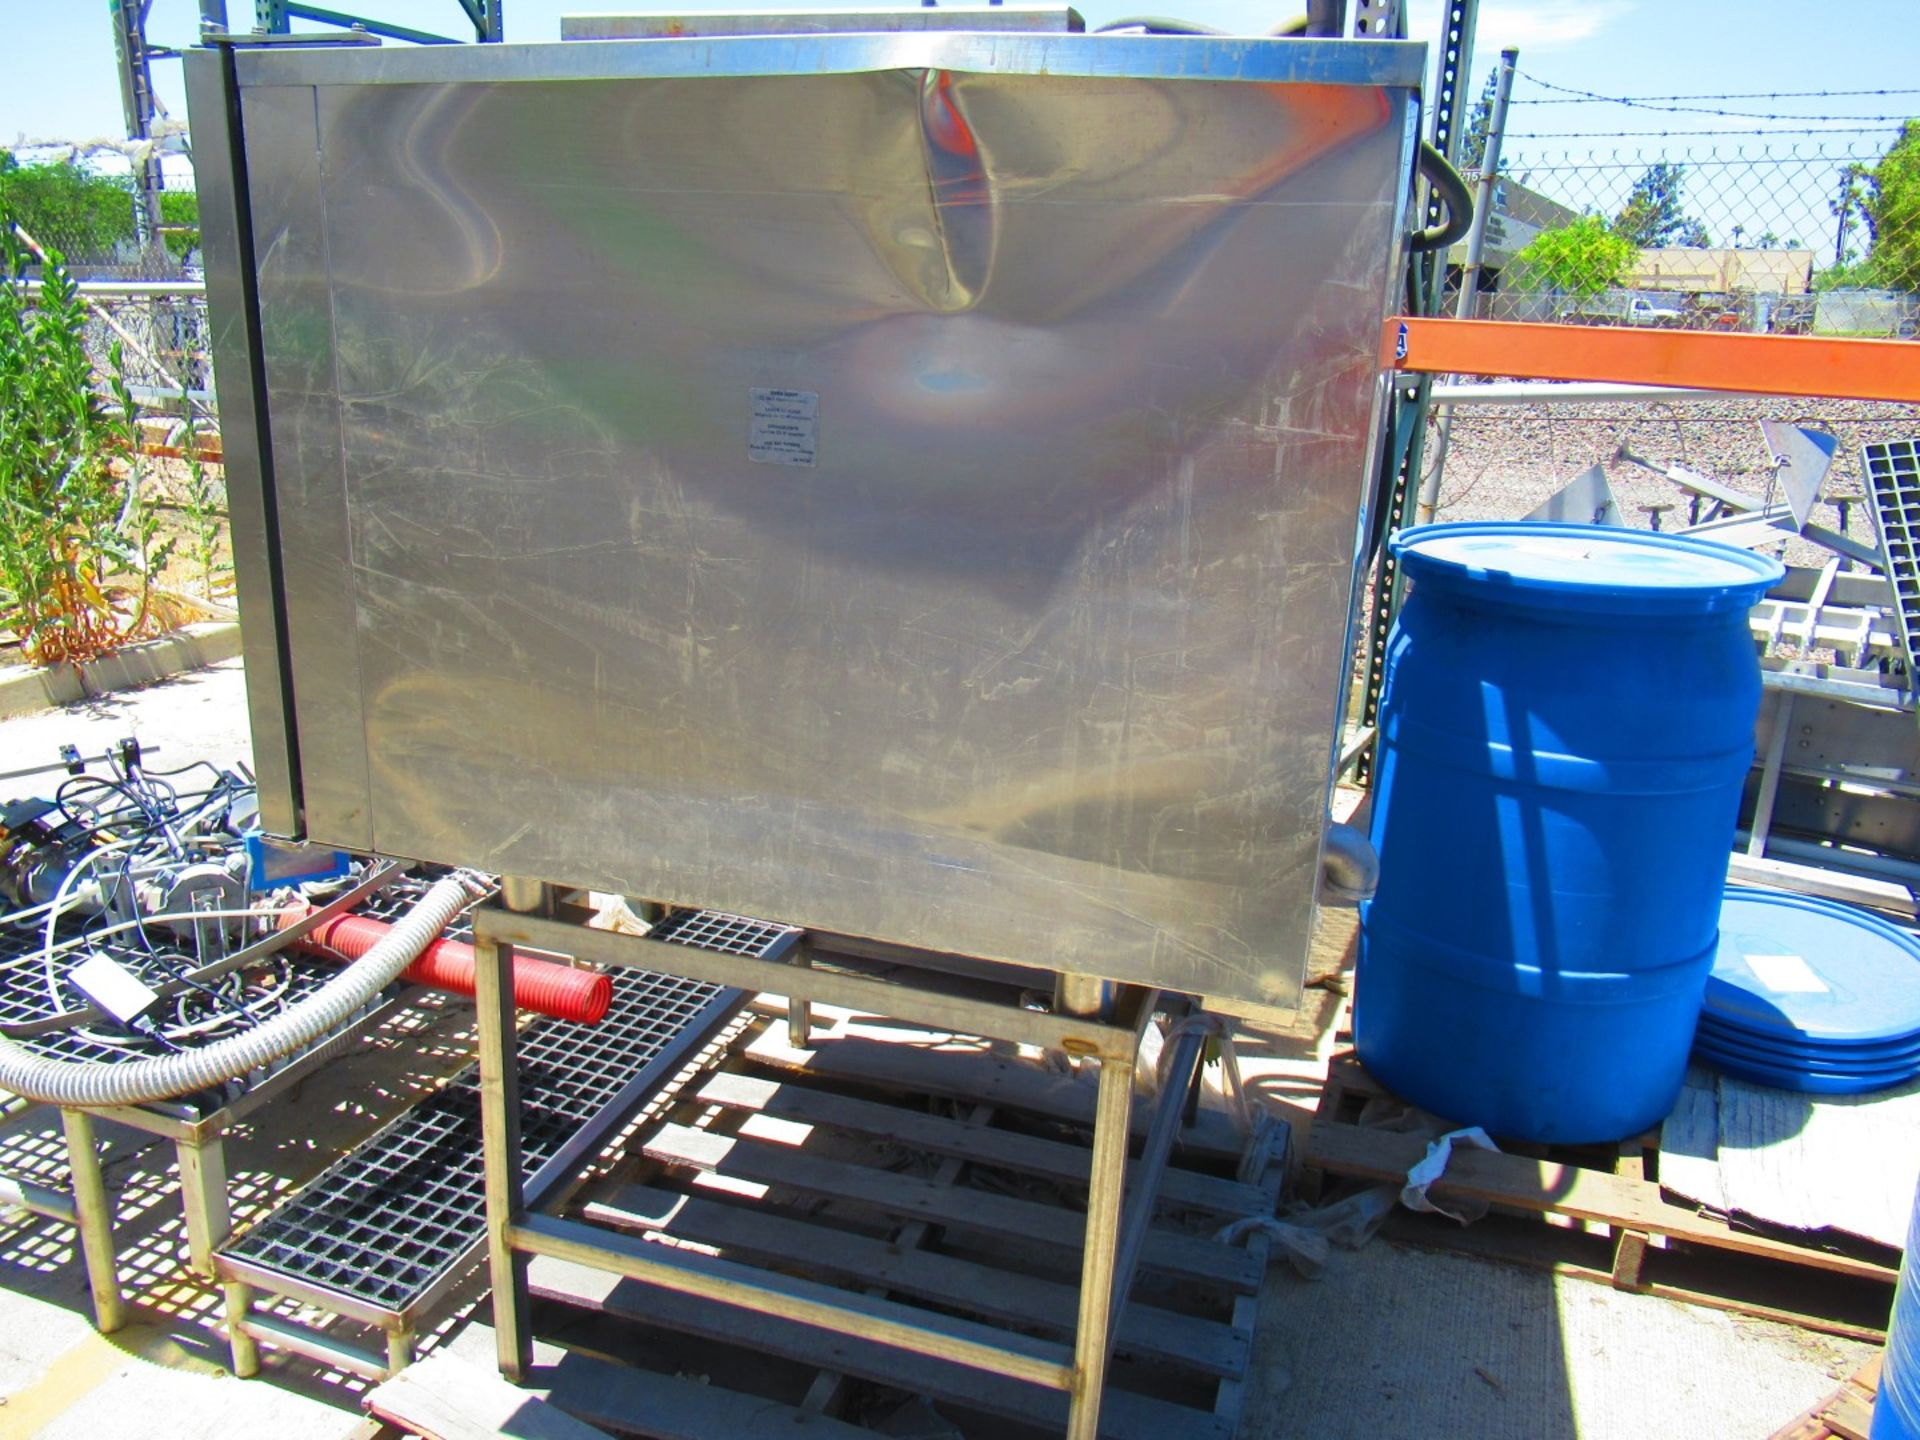 Convection Oven - Image 5 of 6